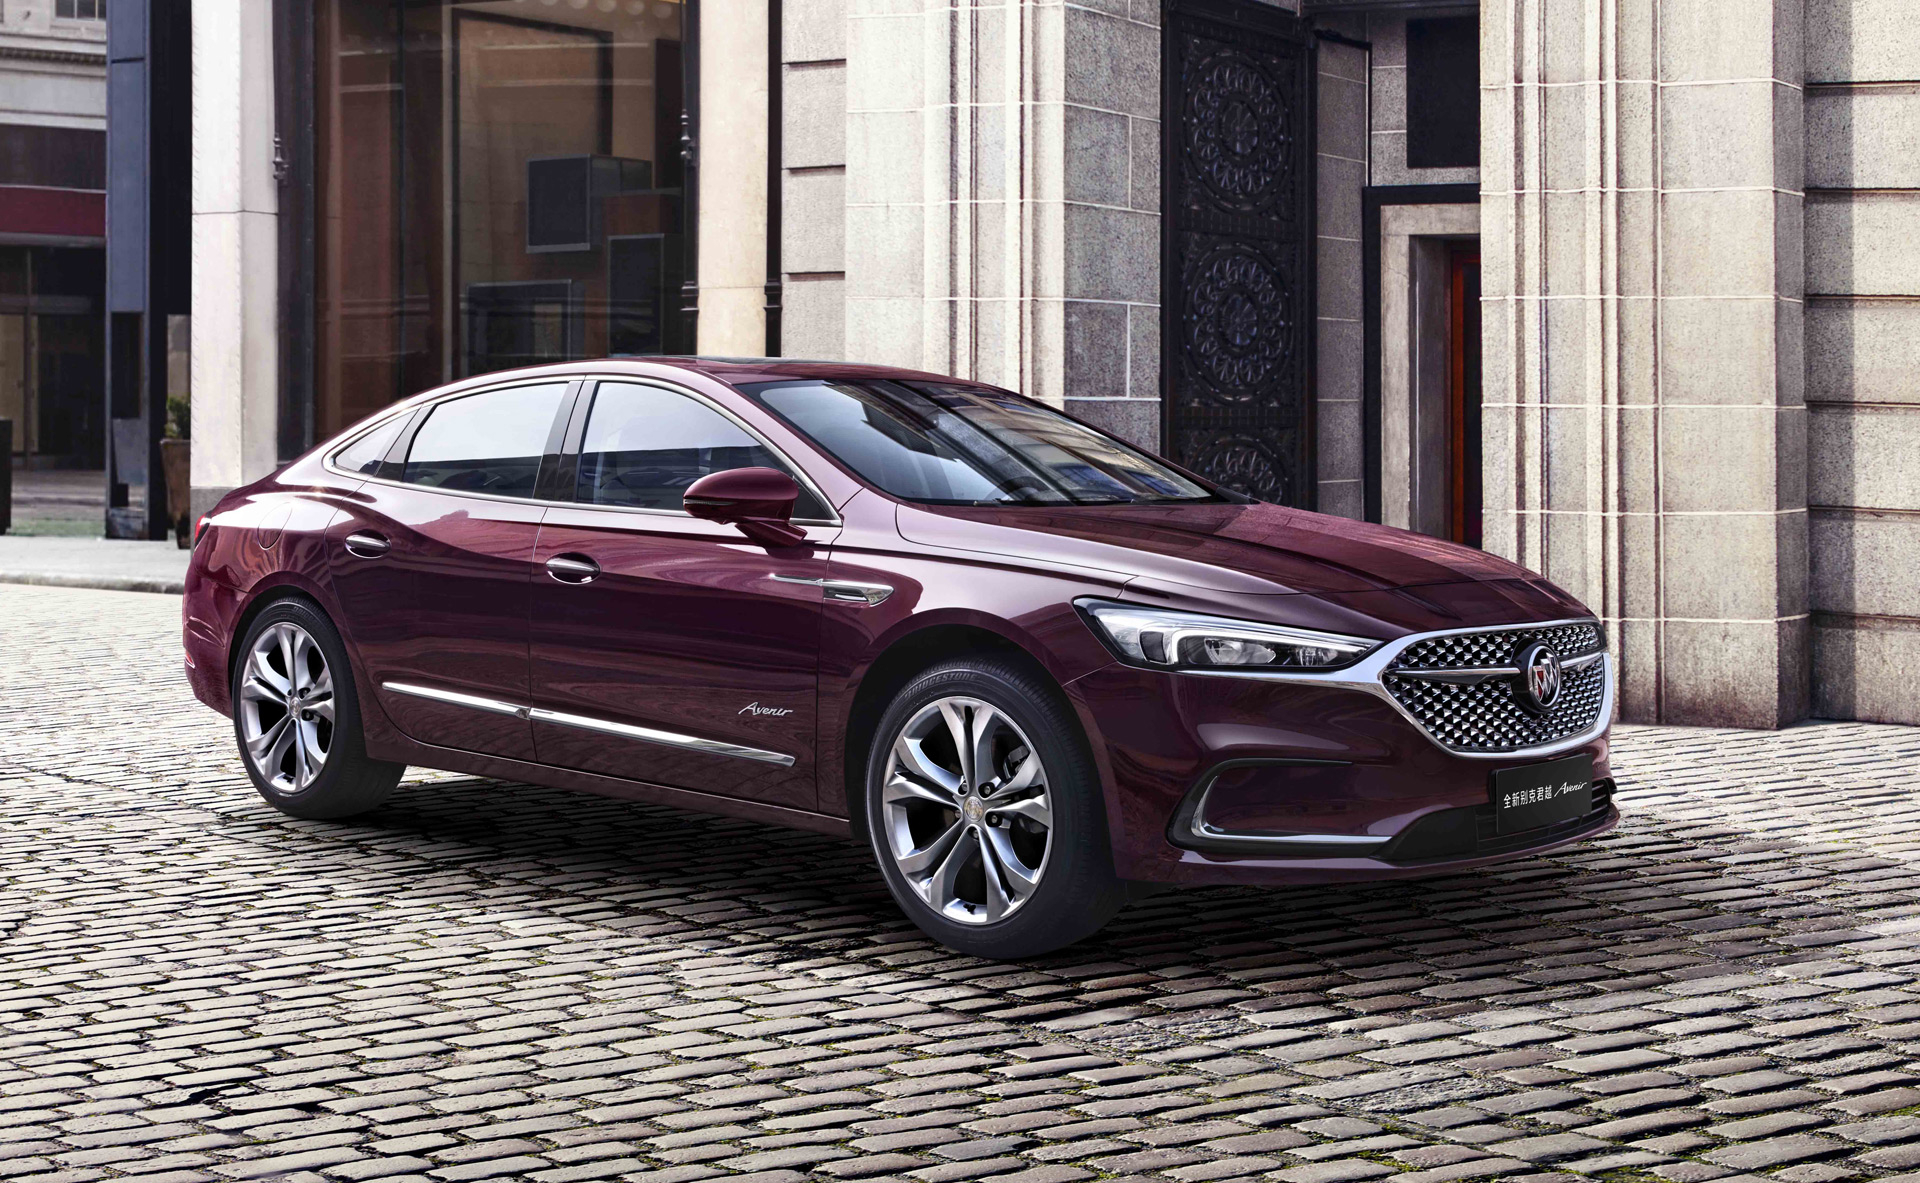 2020 Buick Lacrosse Made Handsome Just As It's Dropped In Us Will There Be A New 2021 Buick Lacrosse